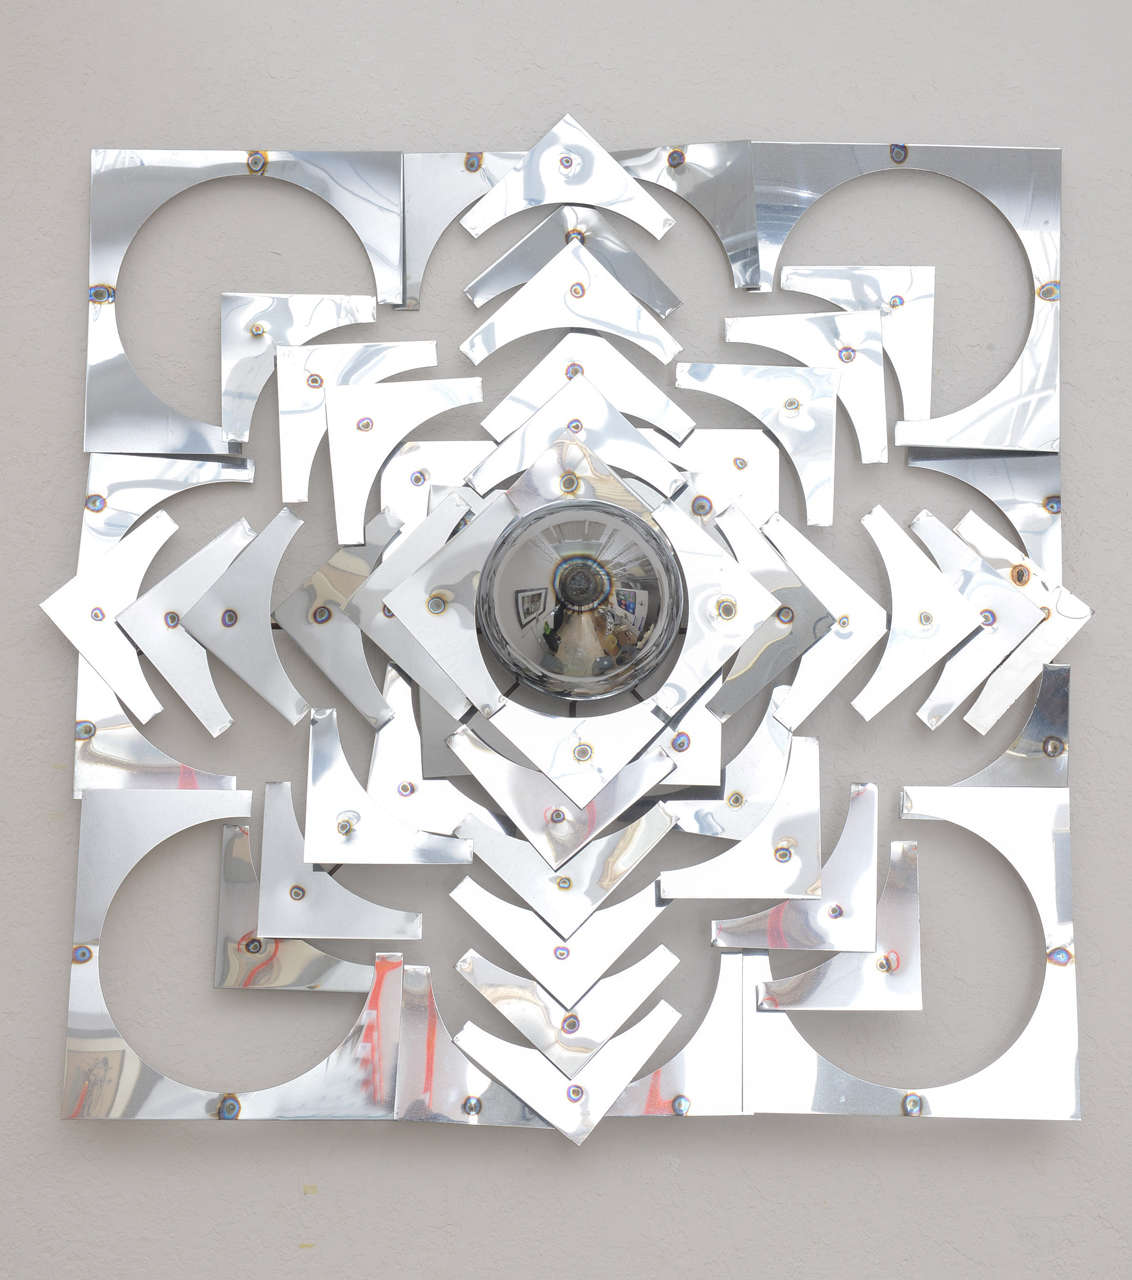 American 1970s, Mid-Century Modern, Pop Art, Polished Chrome, Square, 3-D Wall Sculpture For Sale